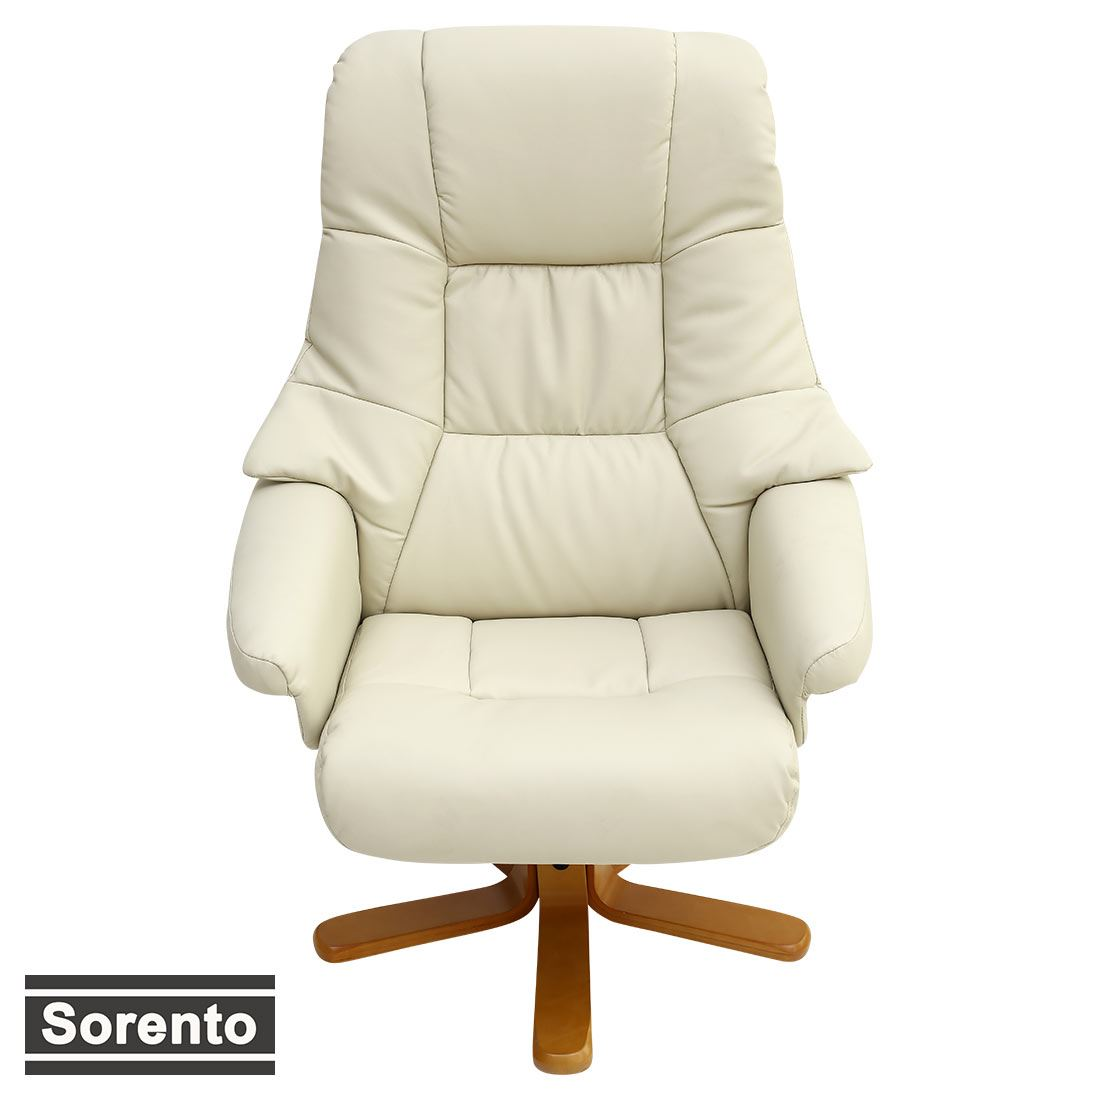 Sorento Real Leather Cream Swivel Recliner Chair W Foot Stool Armchair Office Ebay